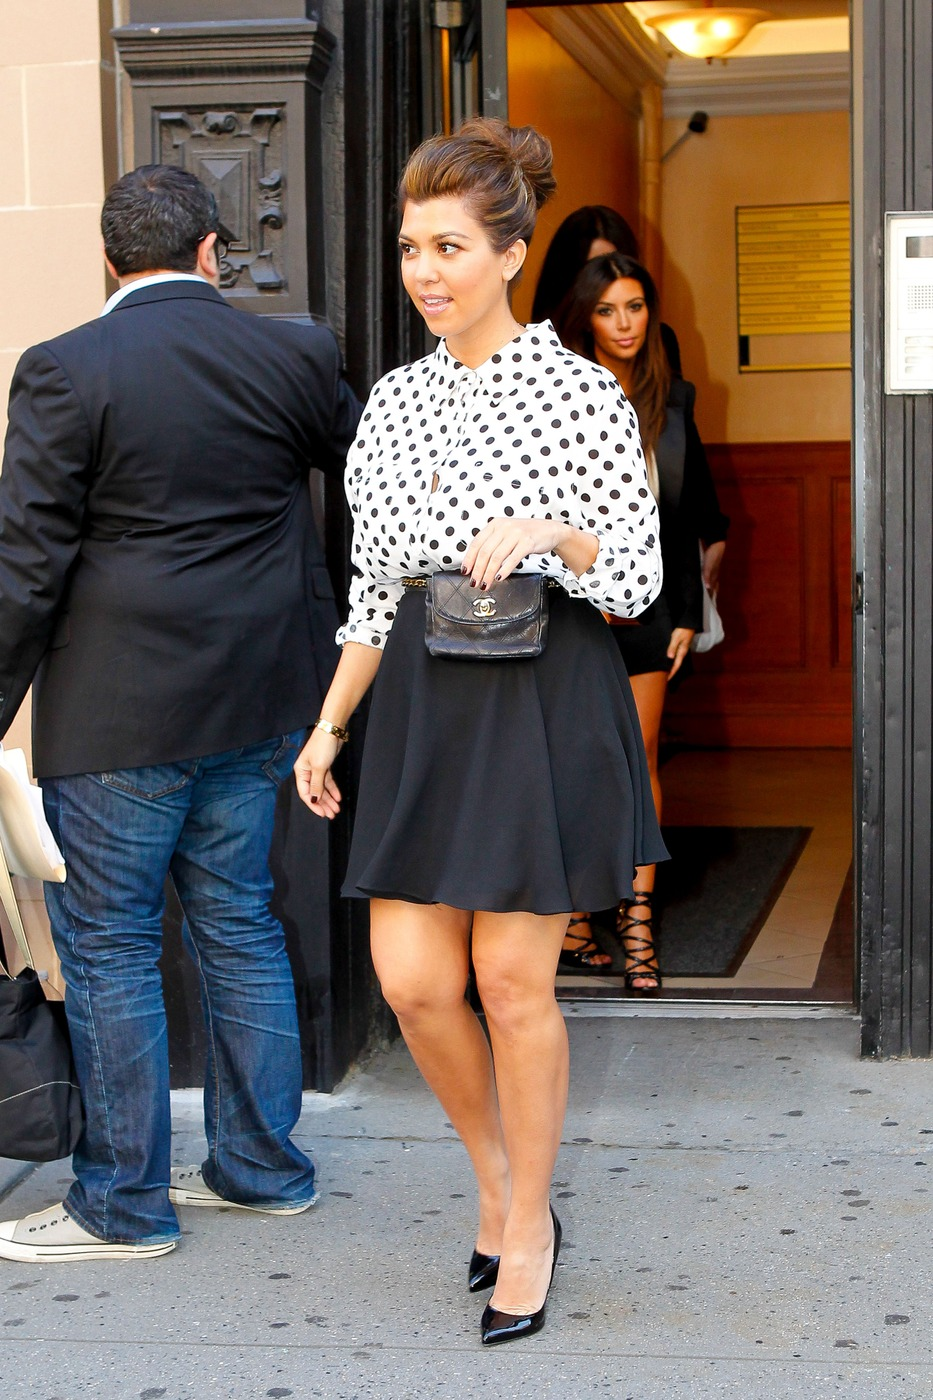 Kourtney, Kim, and Khloe Kardashian leave a building in Midtown Manhattan as they hit the promotional circuit together